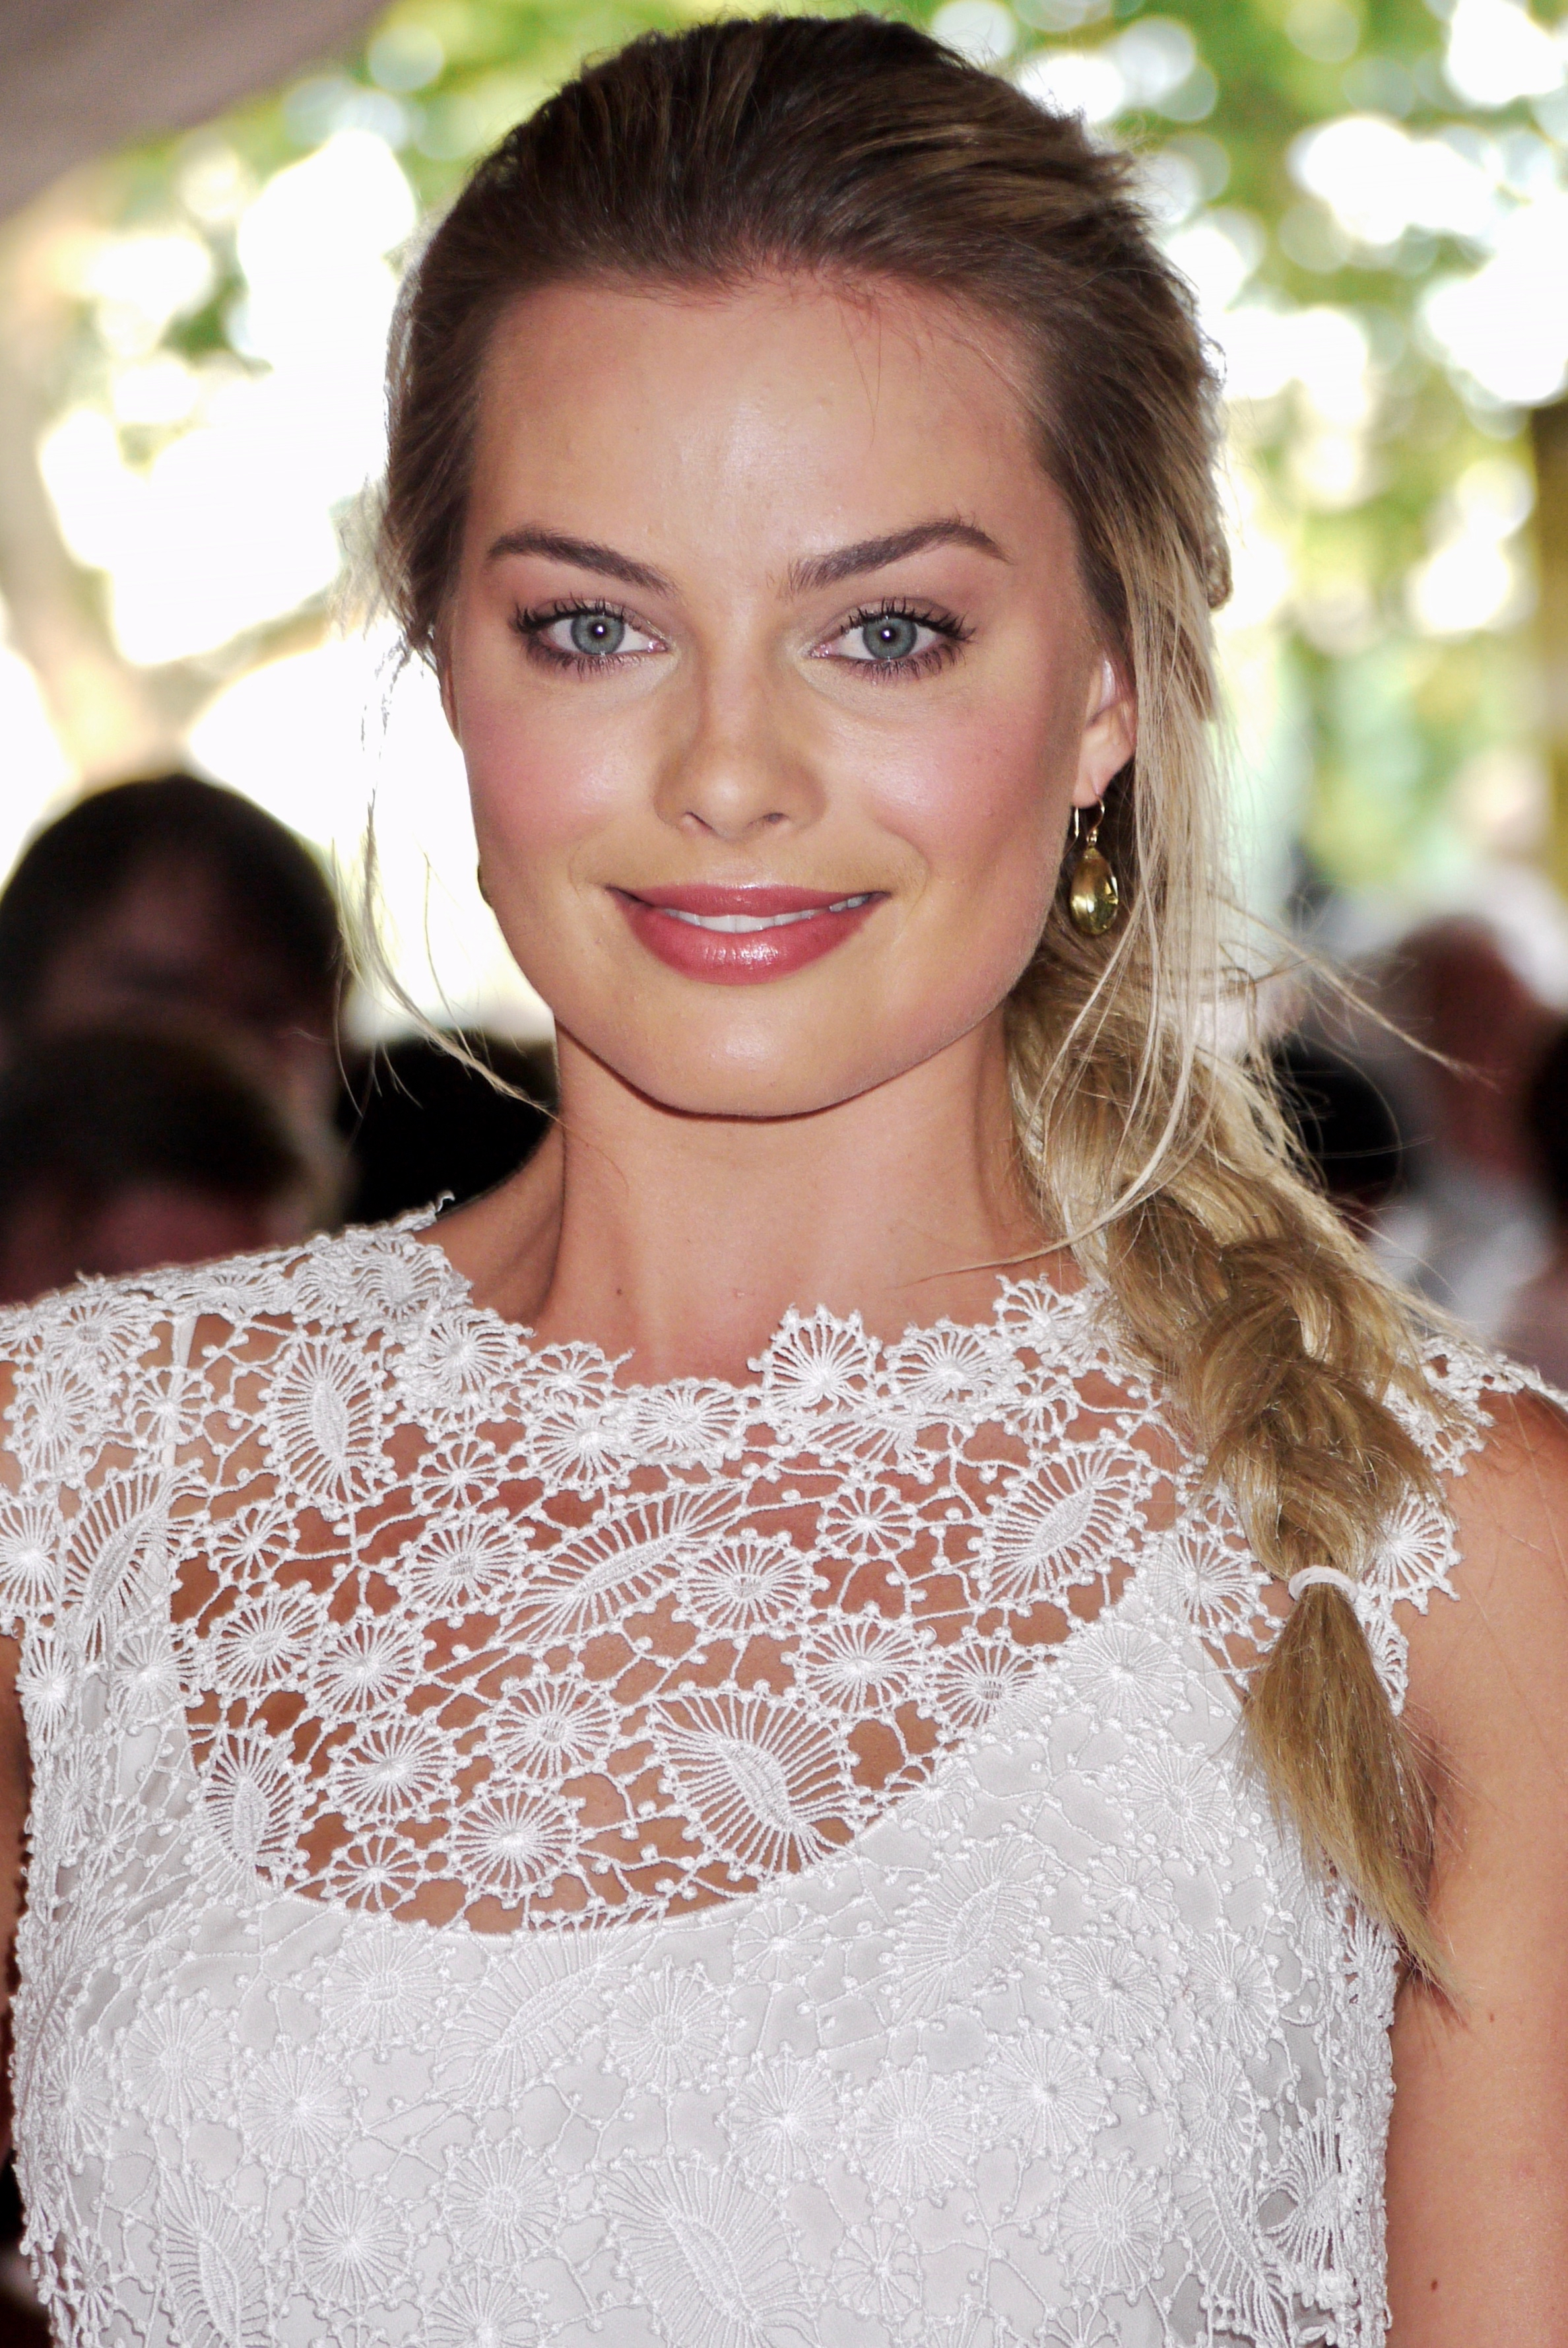 Margot Robbie - Wikipedia